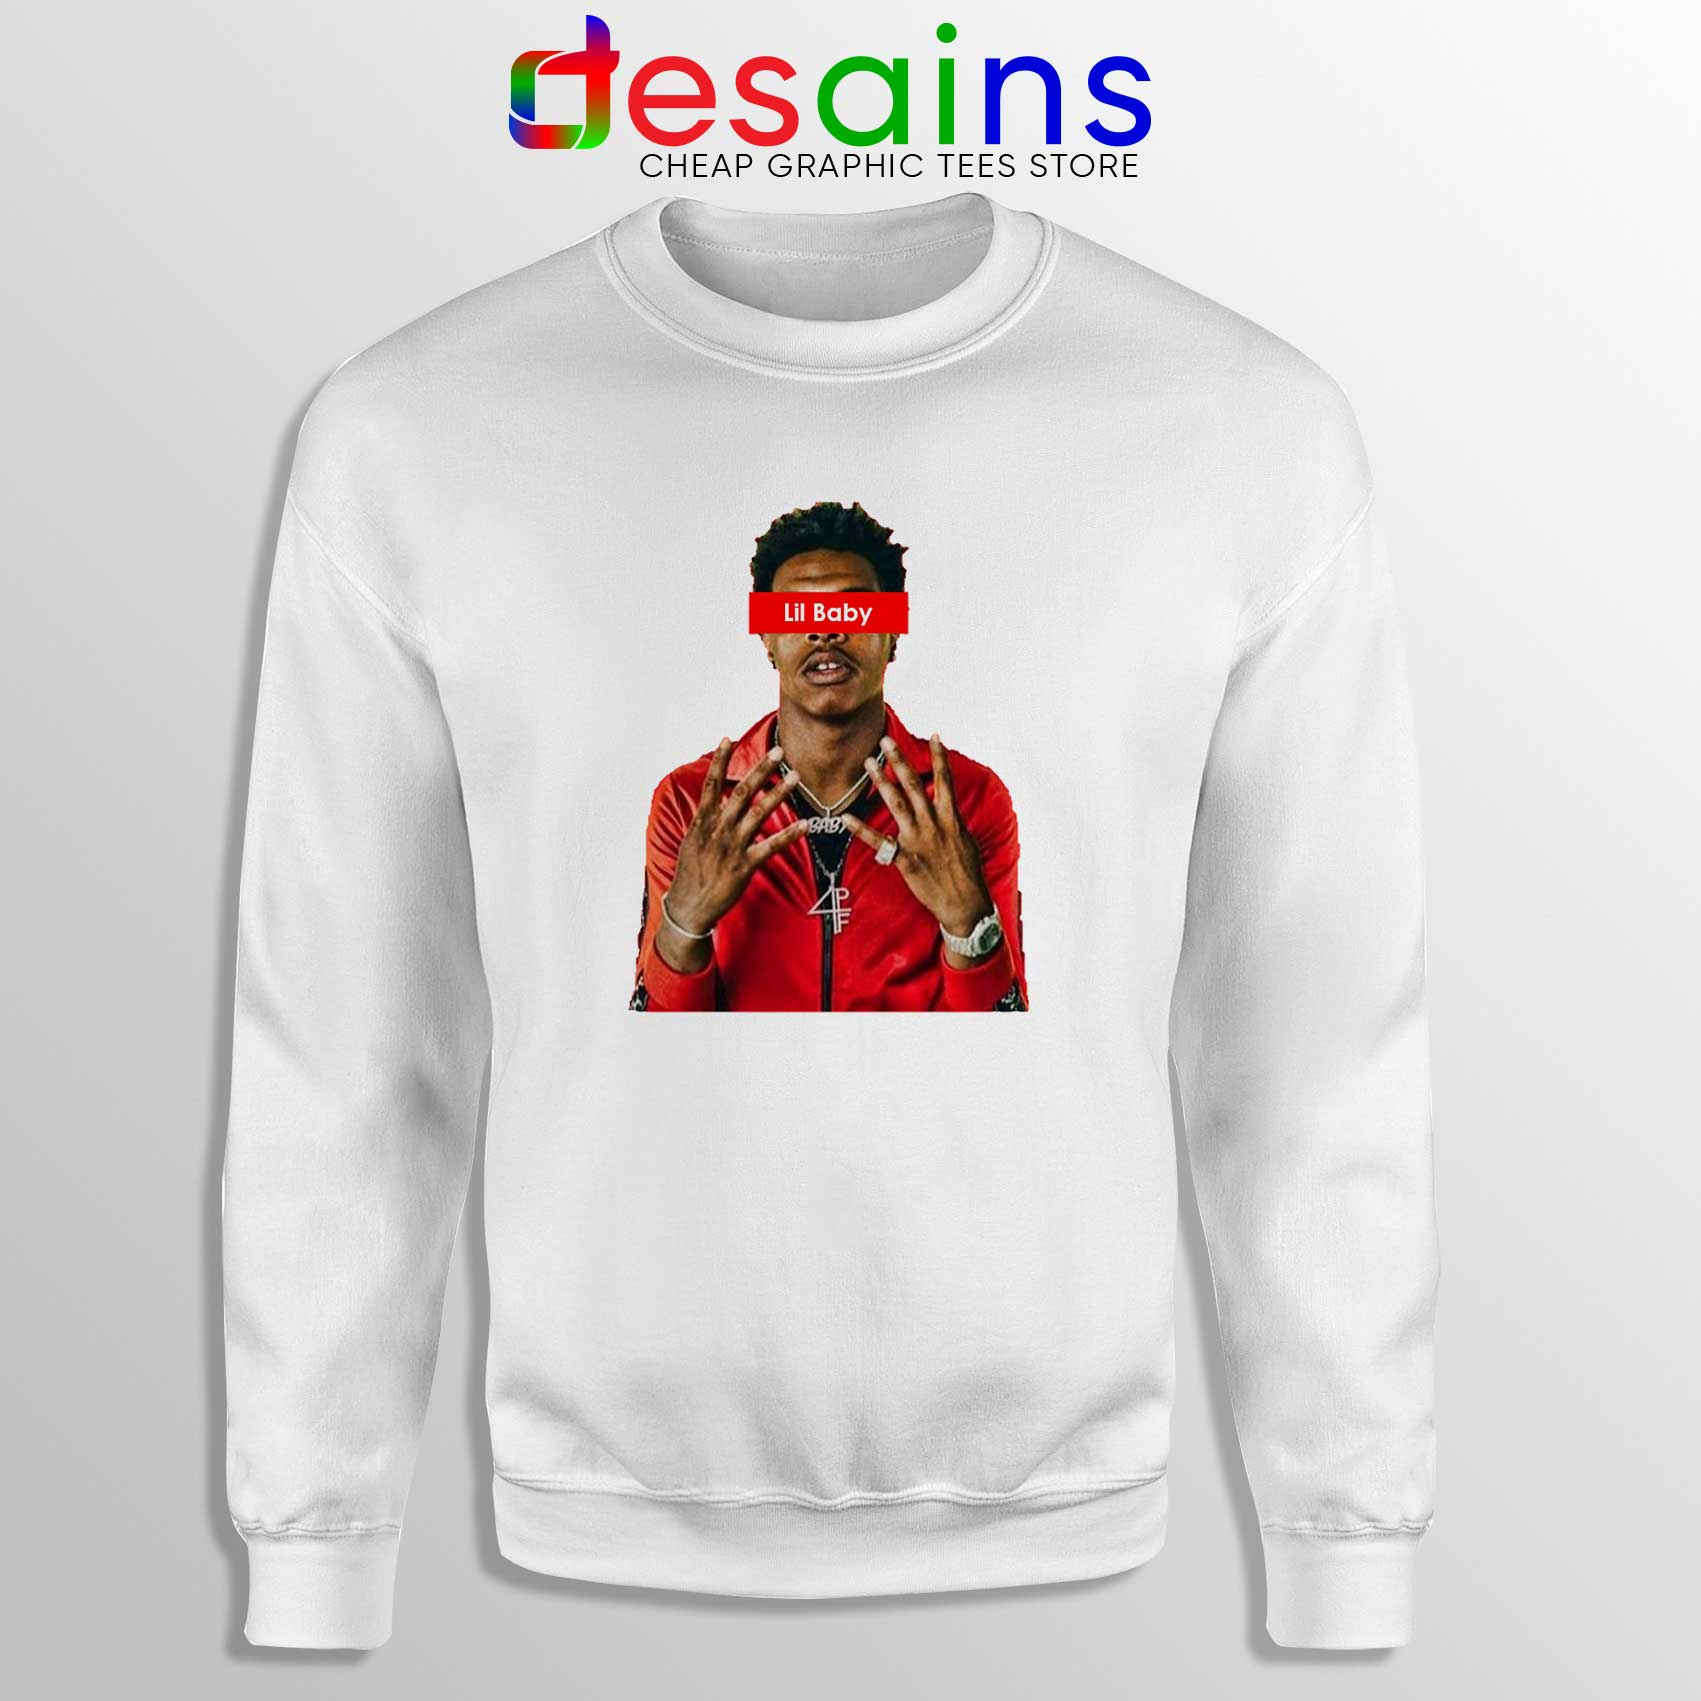 Supreme Sweater Buy Sweatshirt Lil Baby Supreme Crewneck Sweater American Rapper